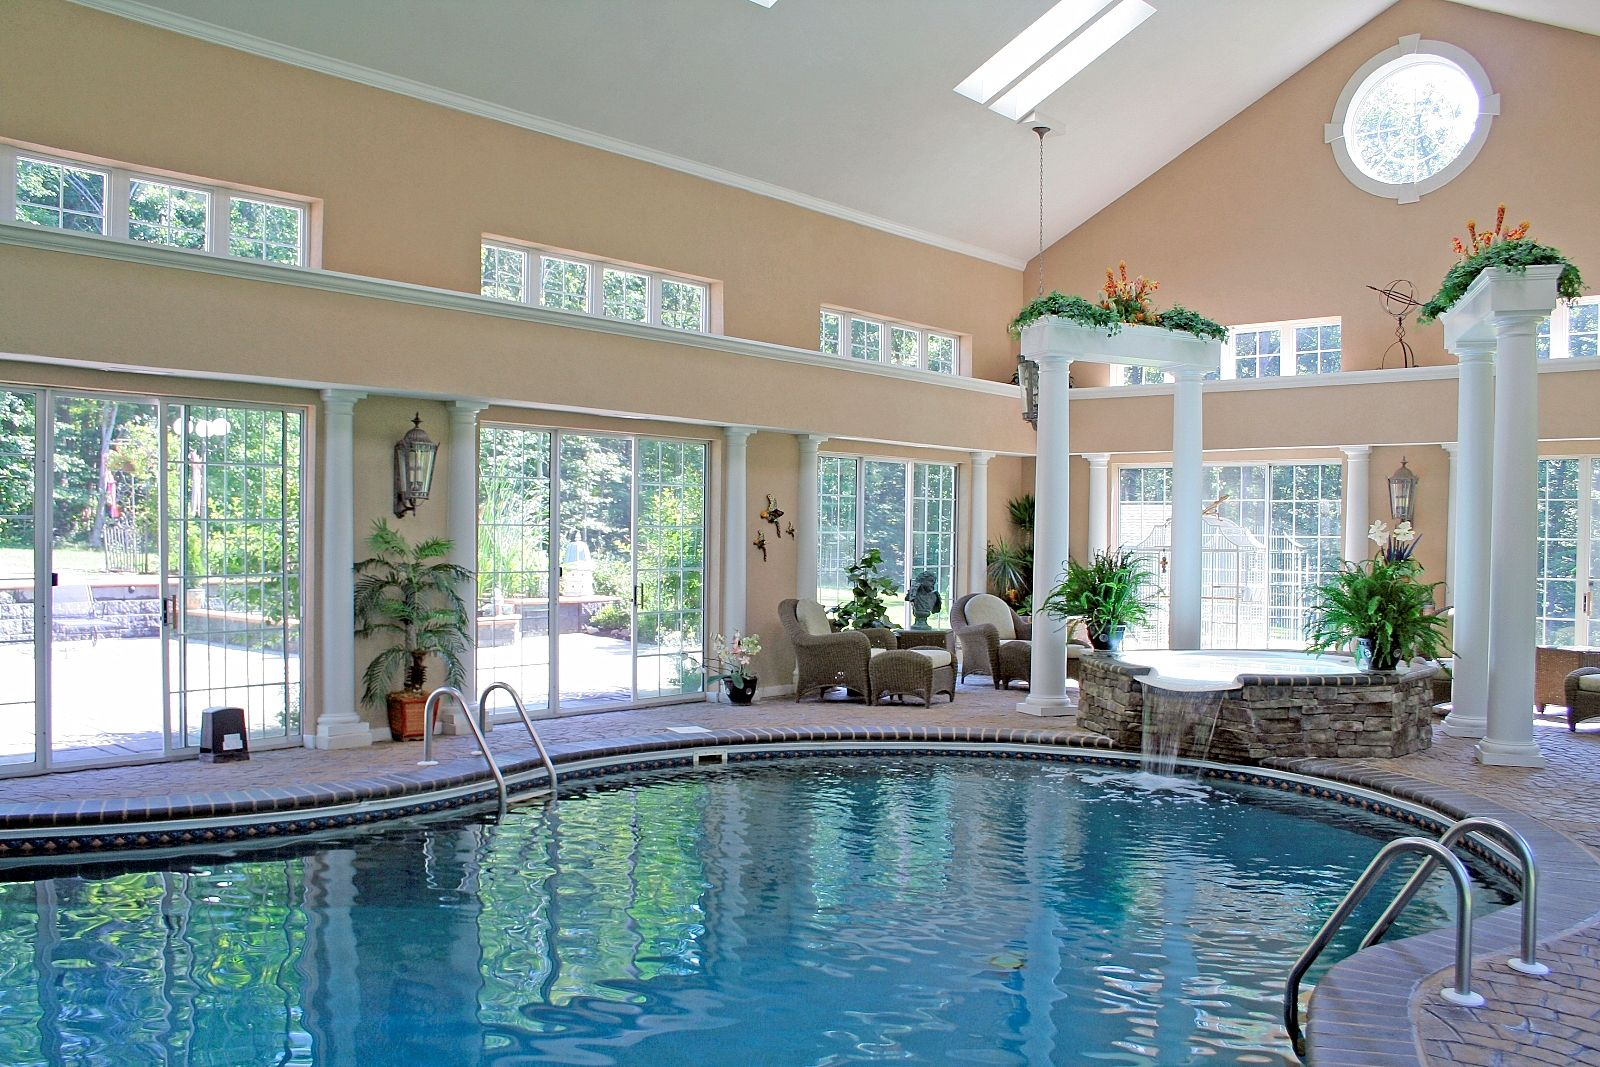 thanks for sharing this post awesome luxury indoor swimming pool interior design gatlinburg tn luxury cabins with indoor pool interior design